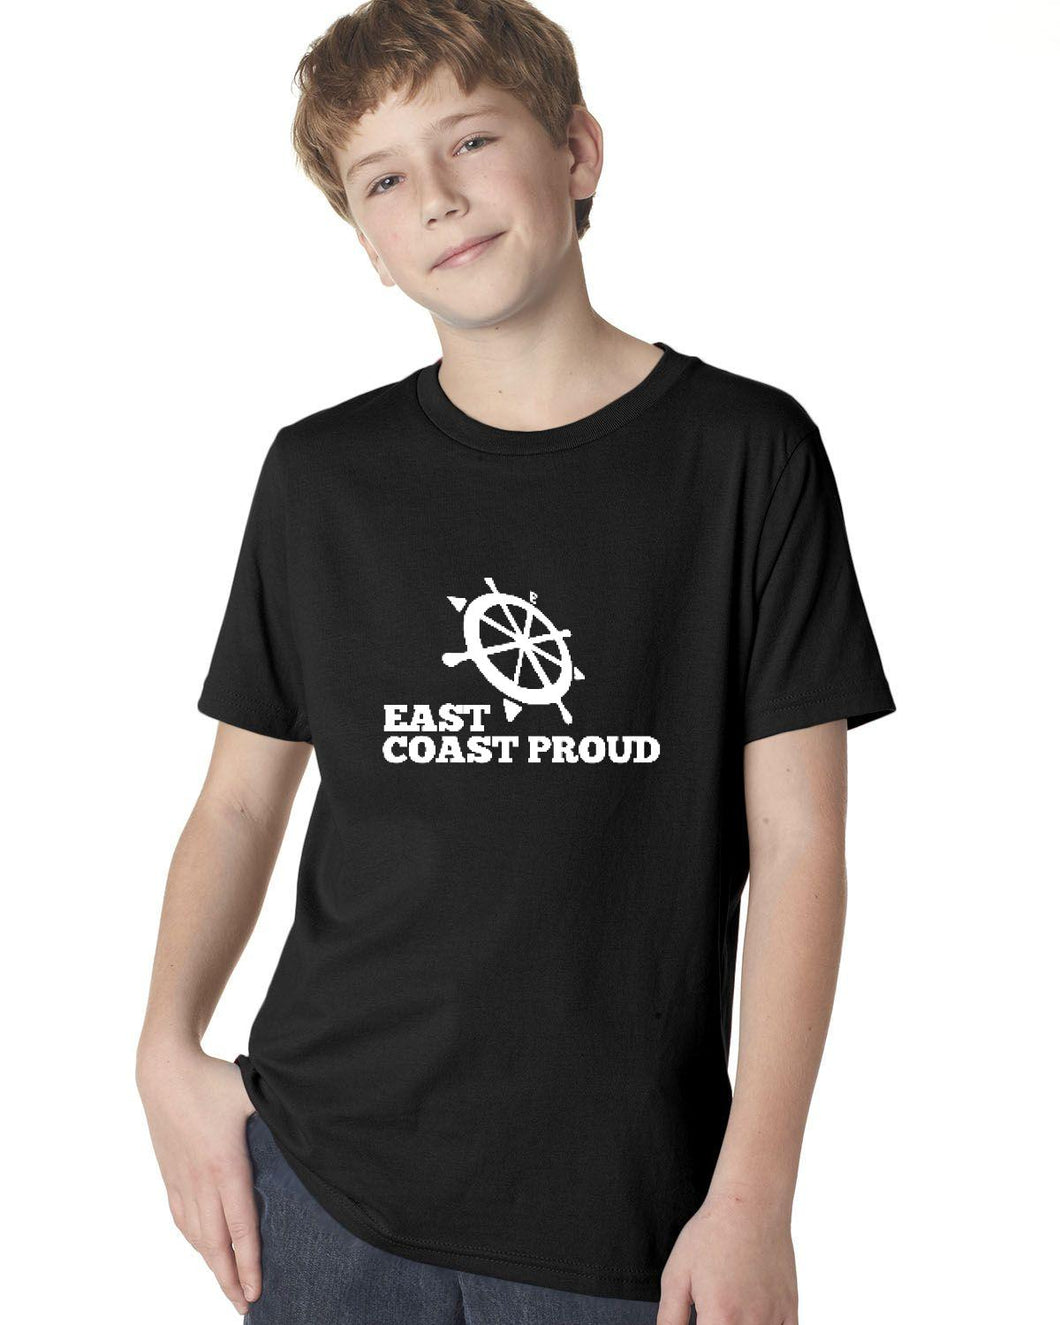 East Coast Proud - Youth T-Shirt